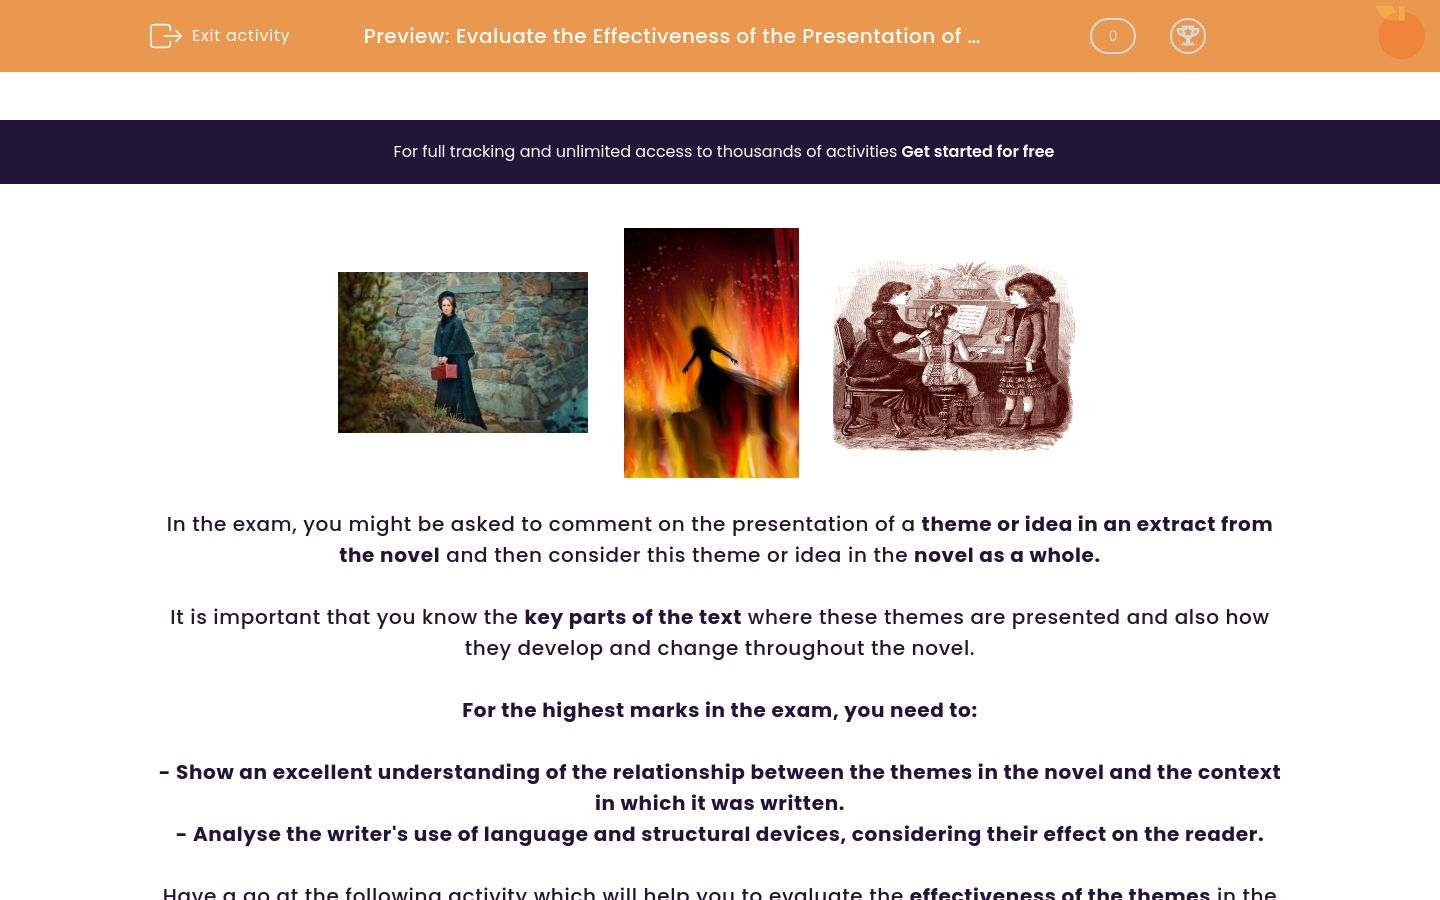 'Evaluate the Effectiveness of the Presentation of Themes in 'Jane Eyre'' worksheet